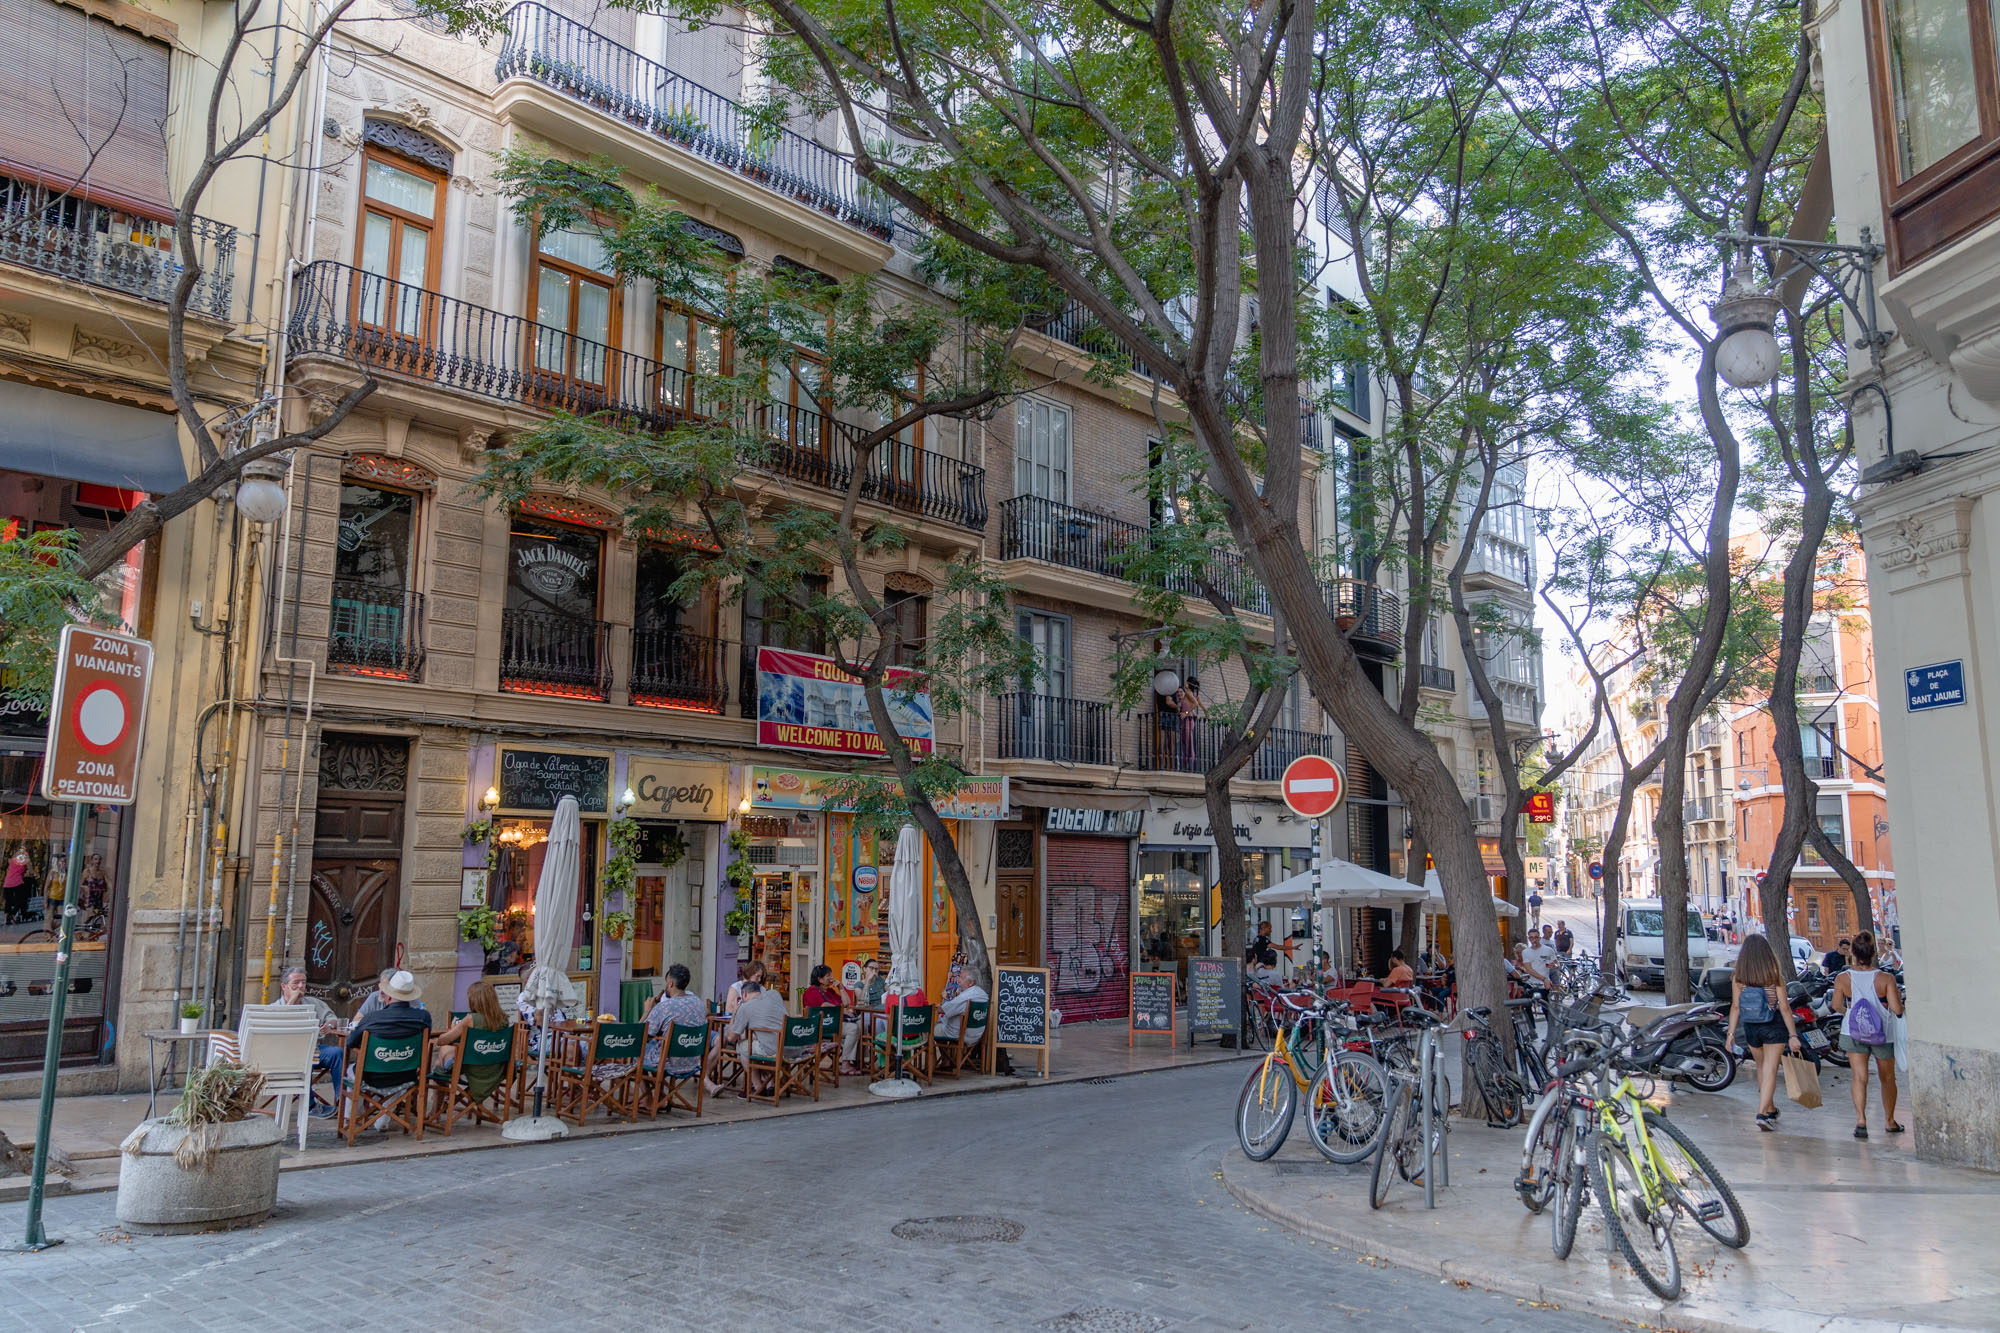 Barrio del Carmen is one of the most famous neighborhoods in Valencia